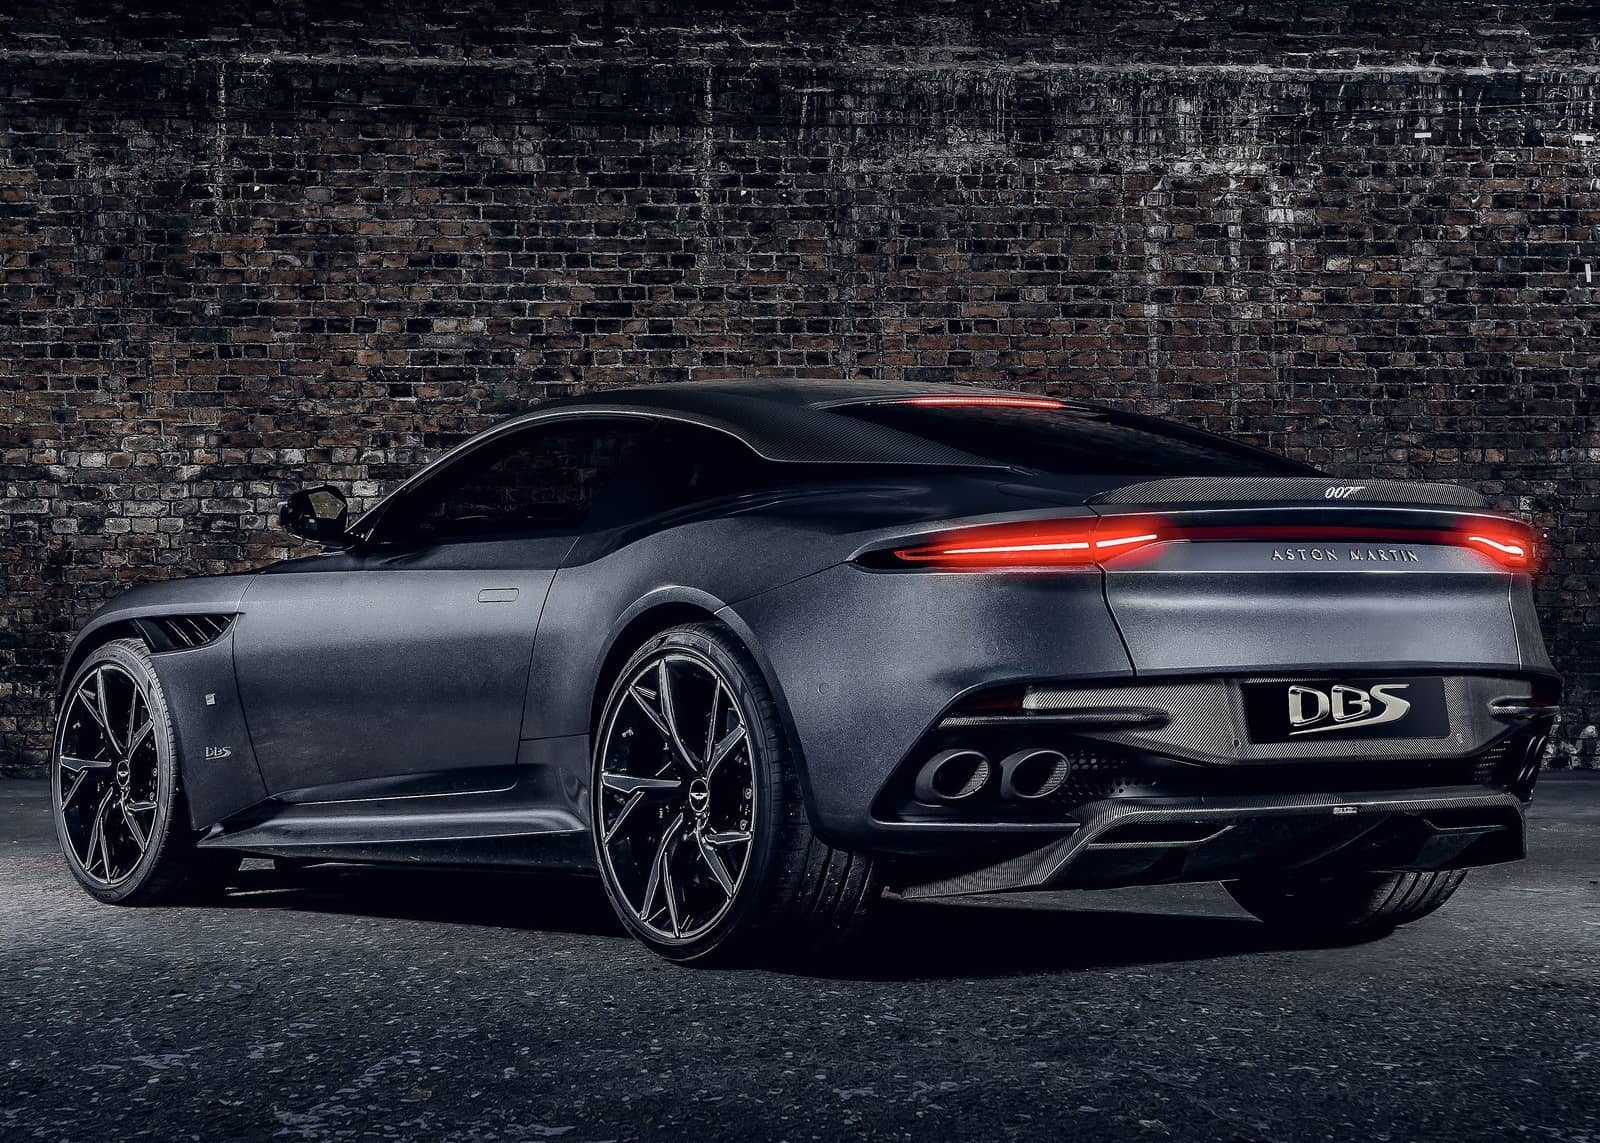 Aston Martin DBS Superleggera 007 Edition-6